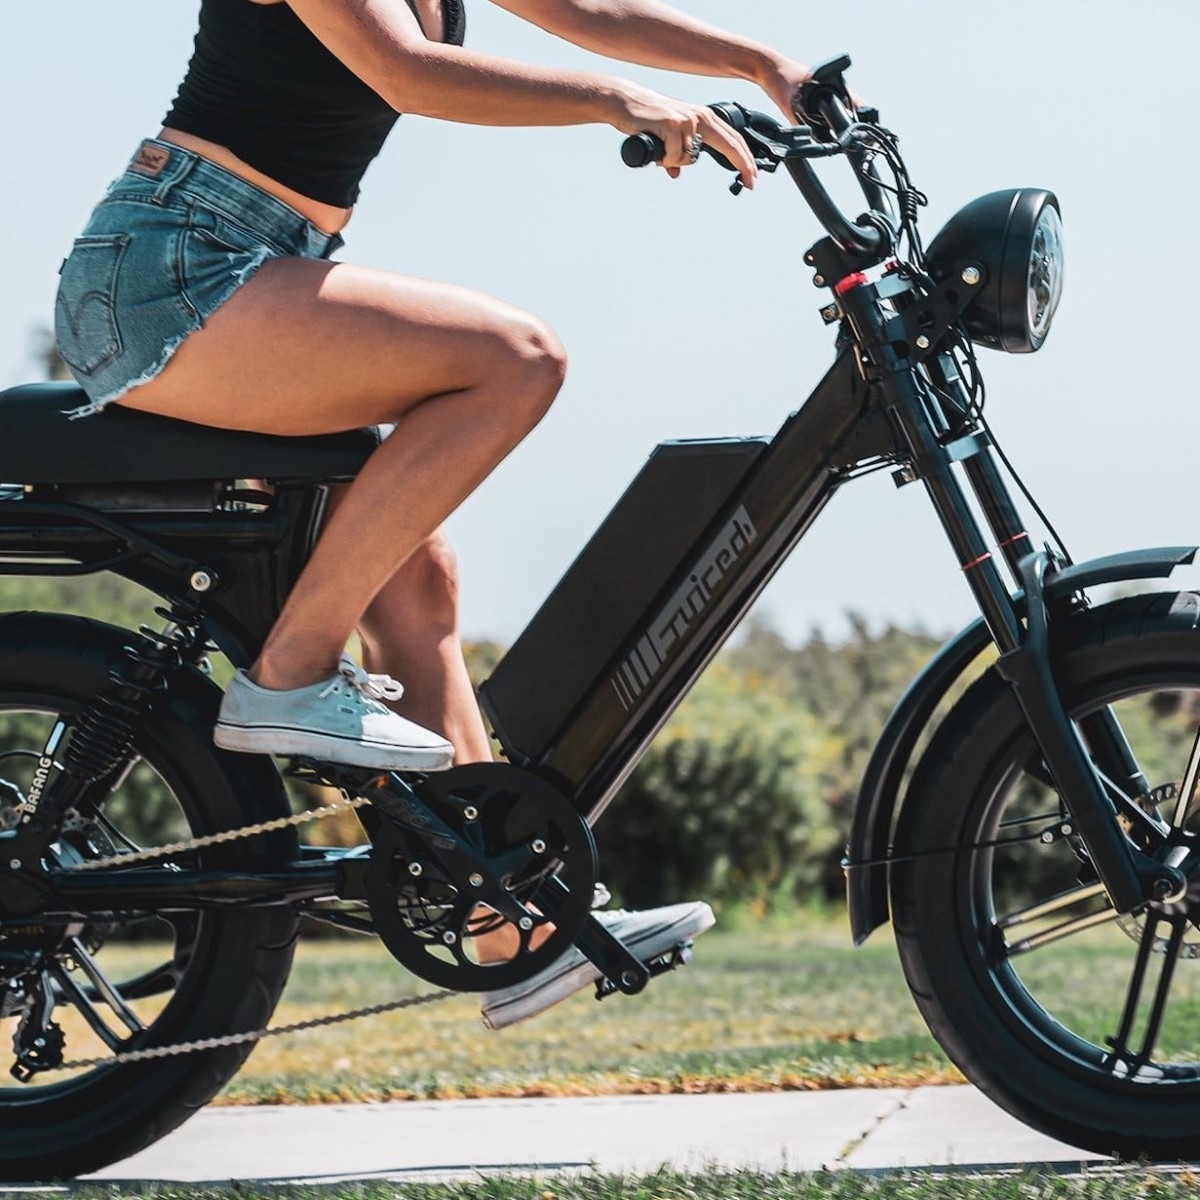 Juiced Scorpion Long Distance E-Bike is a combination of an electric bicycle and moped